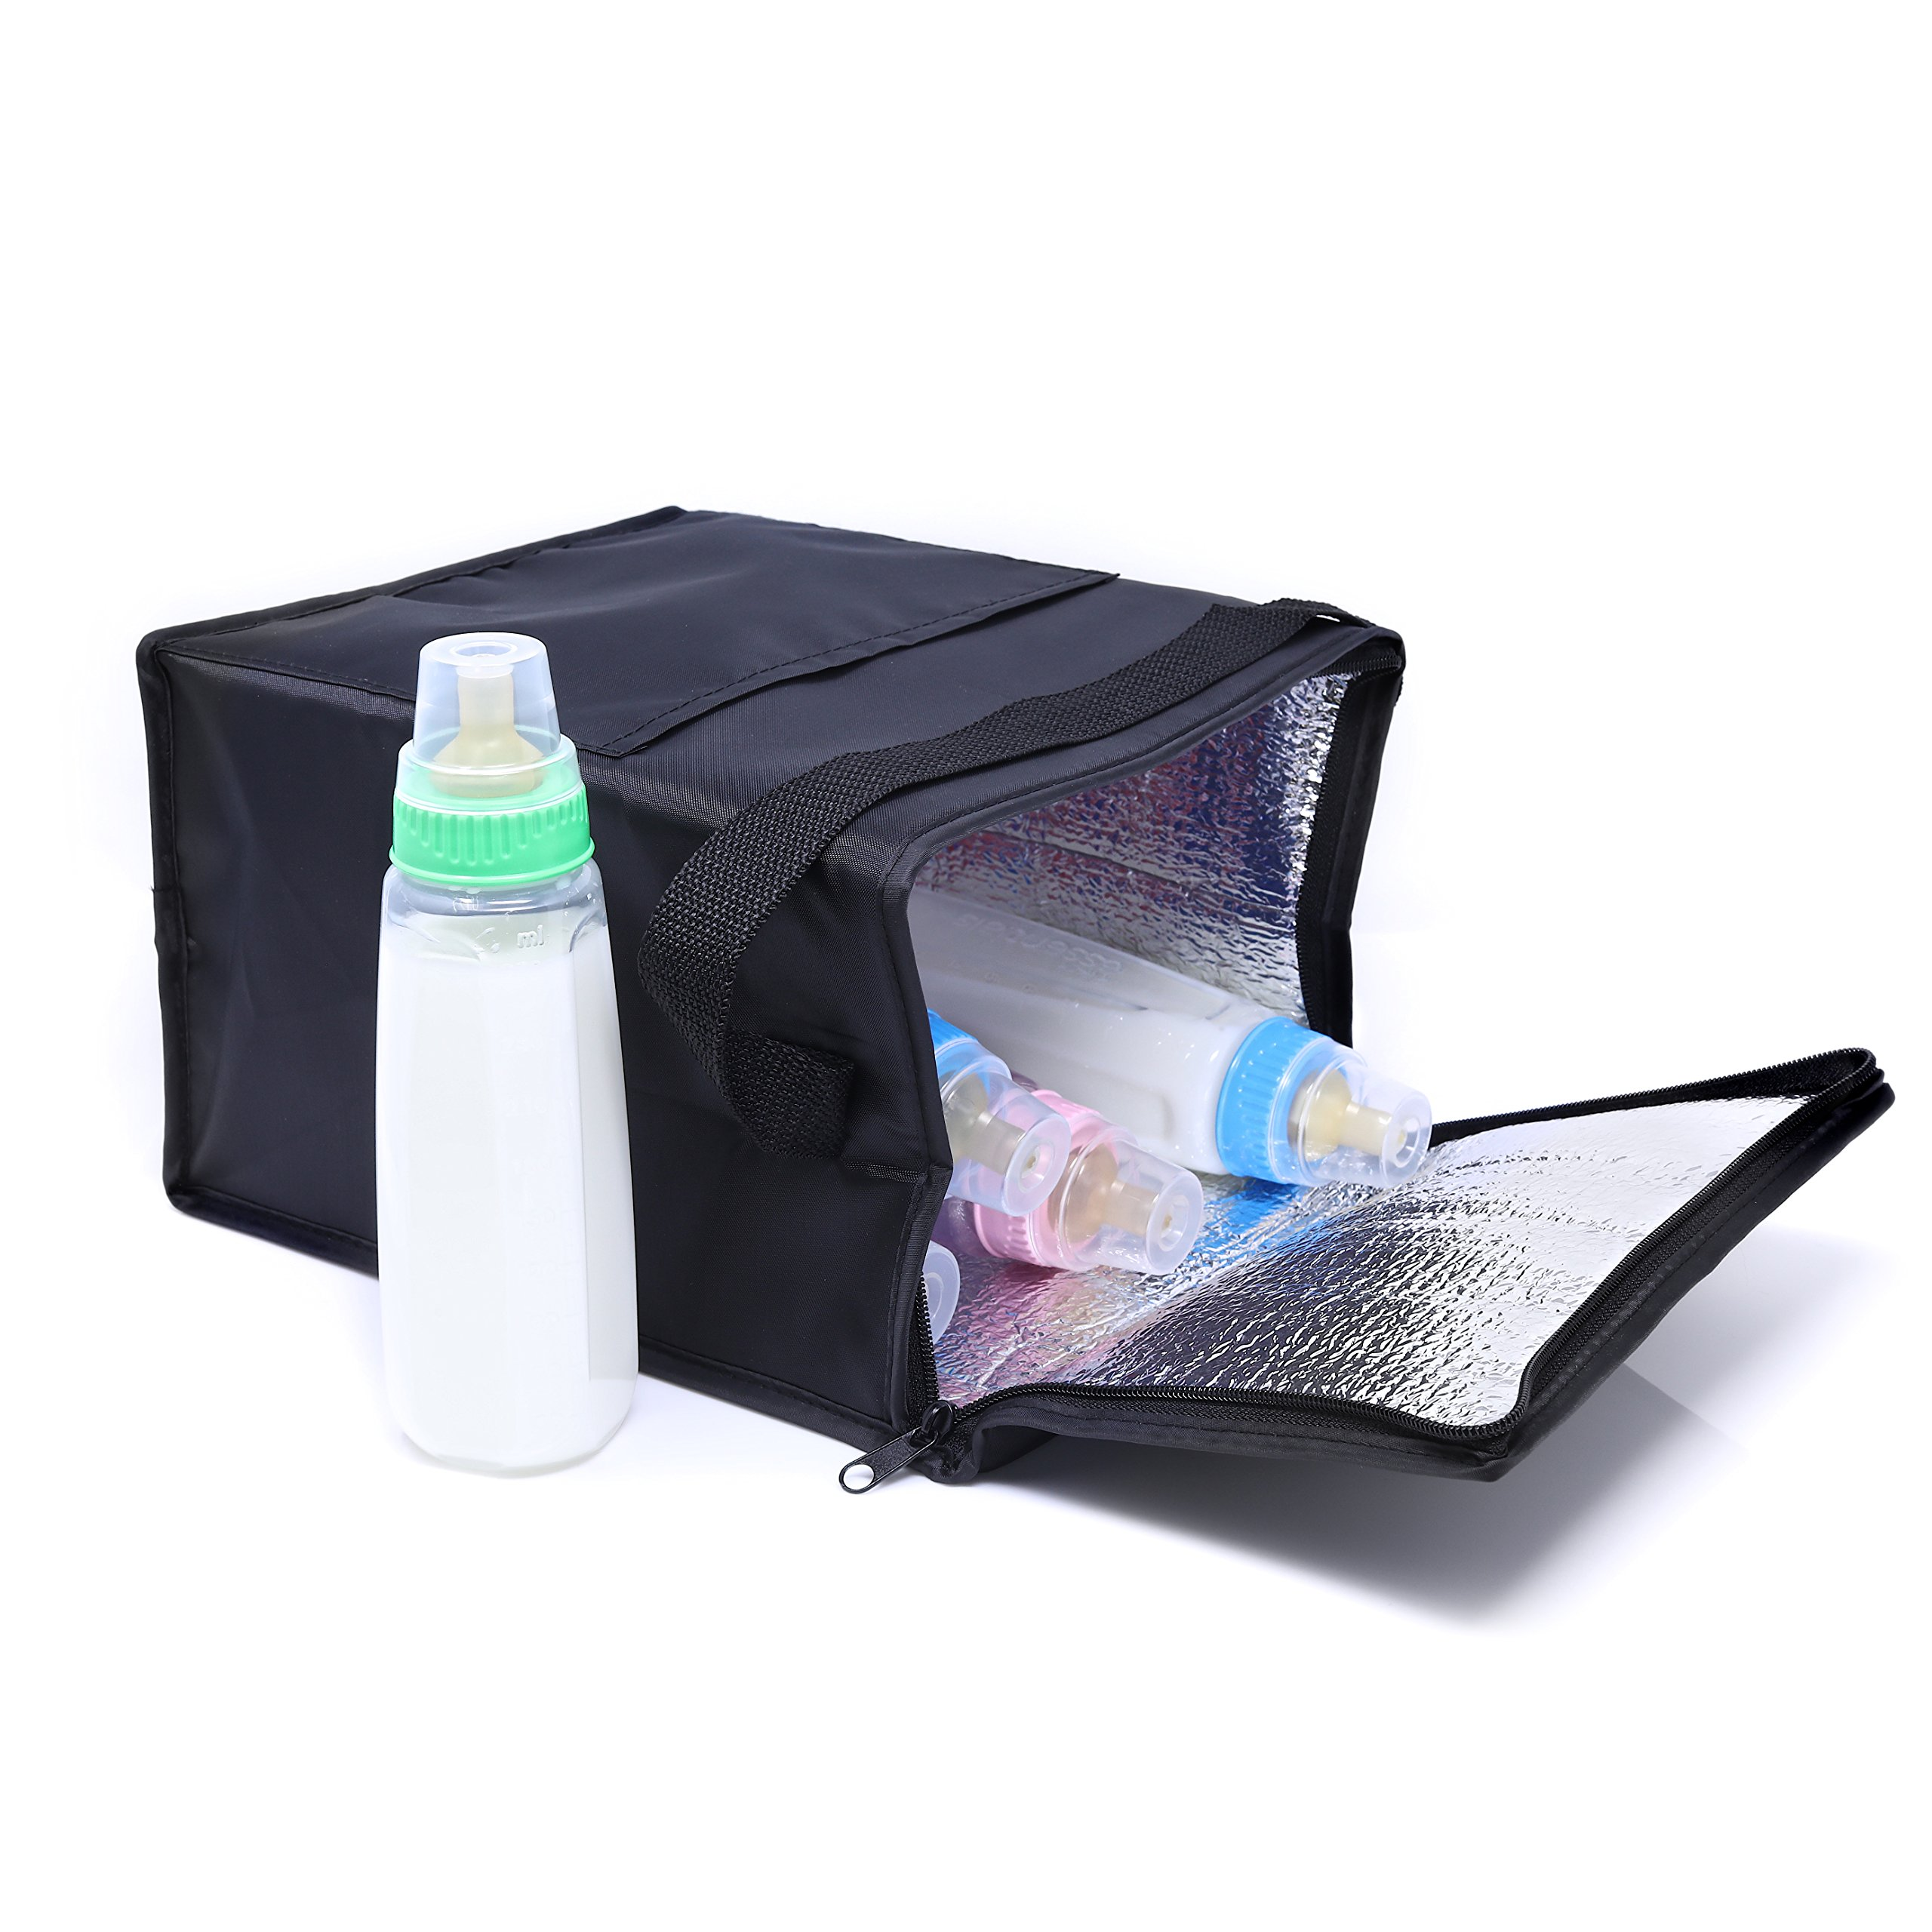 Breast Milk Insulated Baby Bottle Cooler Bag – Breastmilk Cooler Tote Insulated for Safe Storage of Breast Milk Baby Bottles and Preserves Important Nutrients